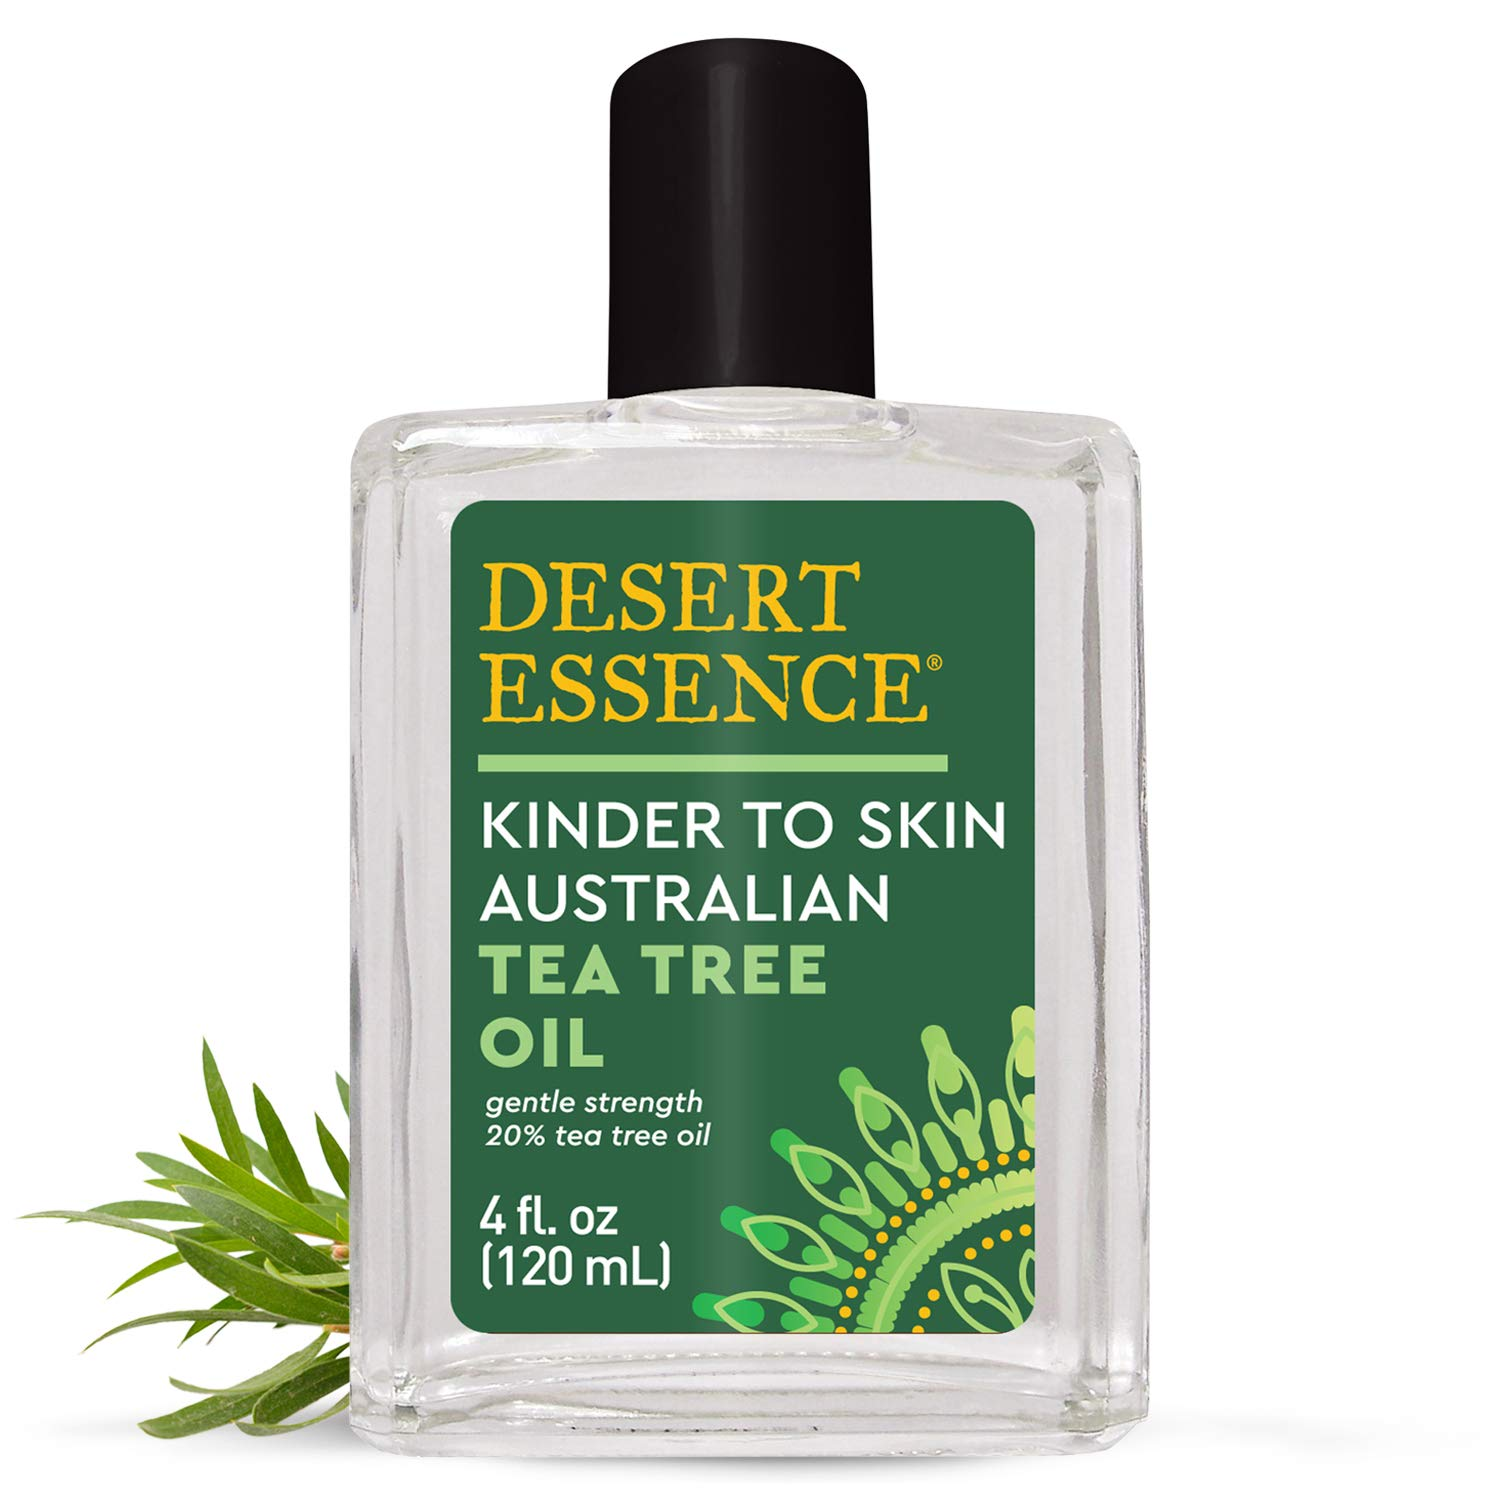 Desert Essence Kinder to Skin Australian Tea Tree Oil - 4 Fl Oz - Soothes Stings & Minor Insect Bites - Blemishes - Water Soluble - Essential Oil - Refreshing - Natural Glow - No Parabens